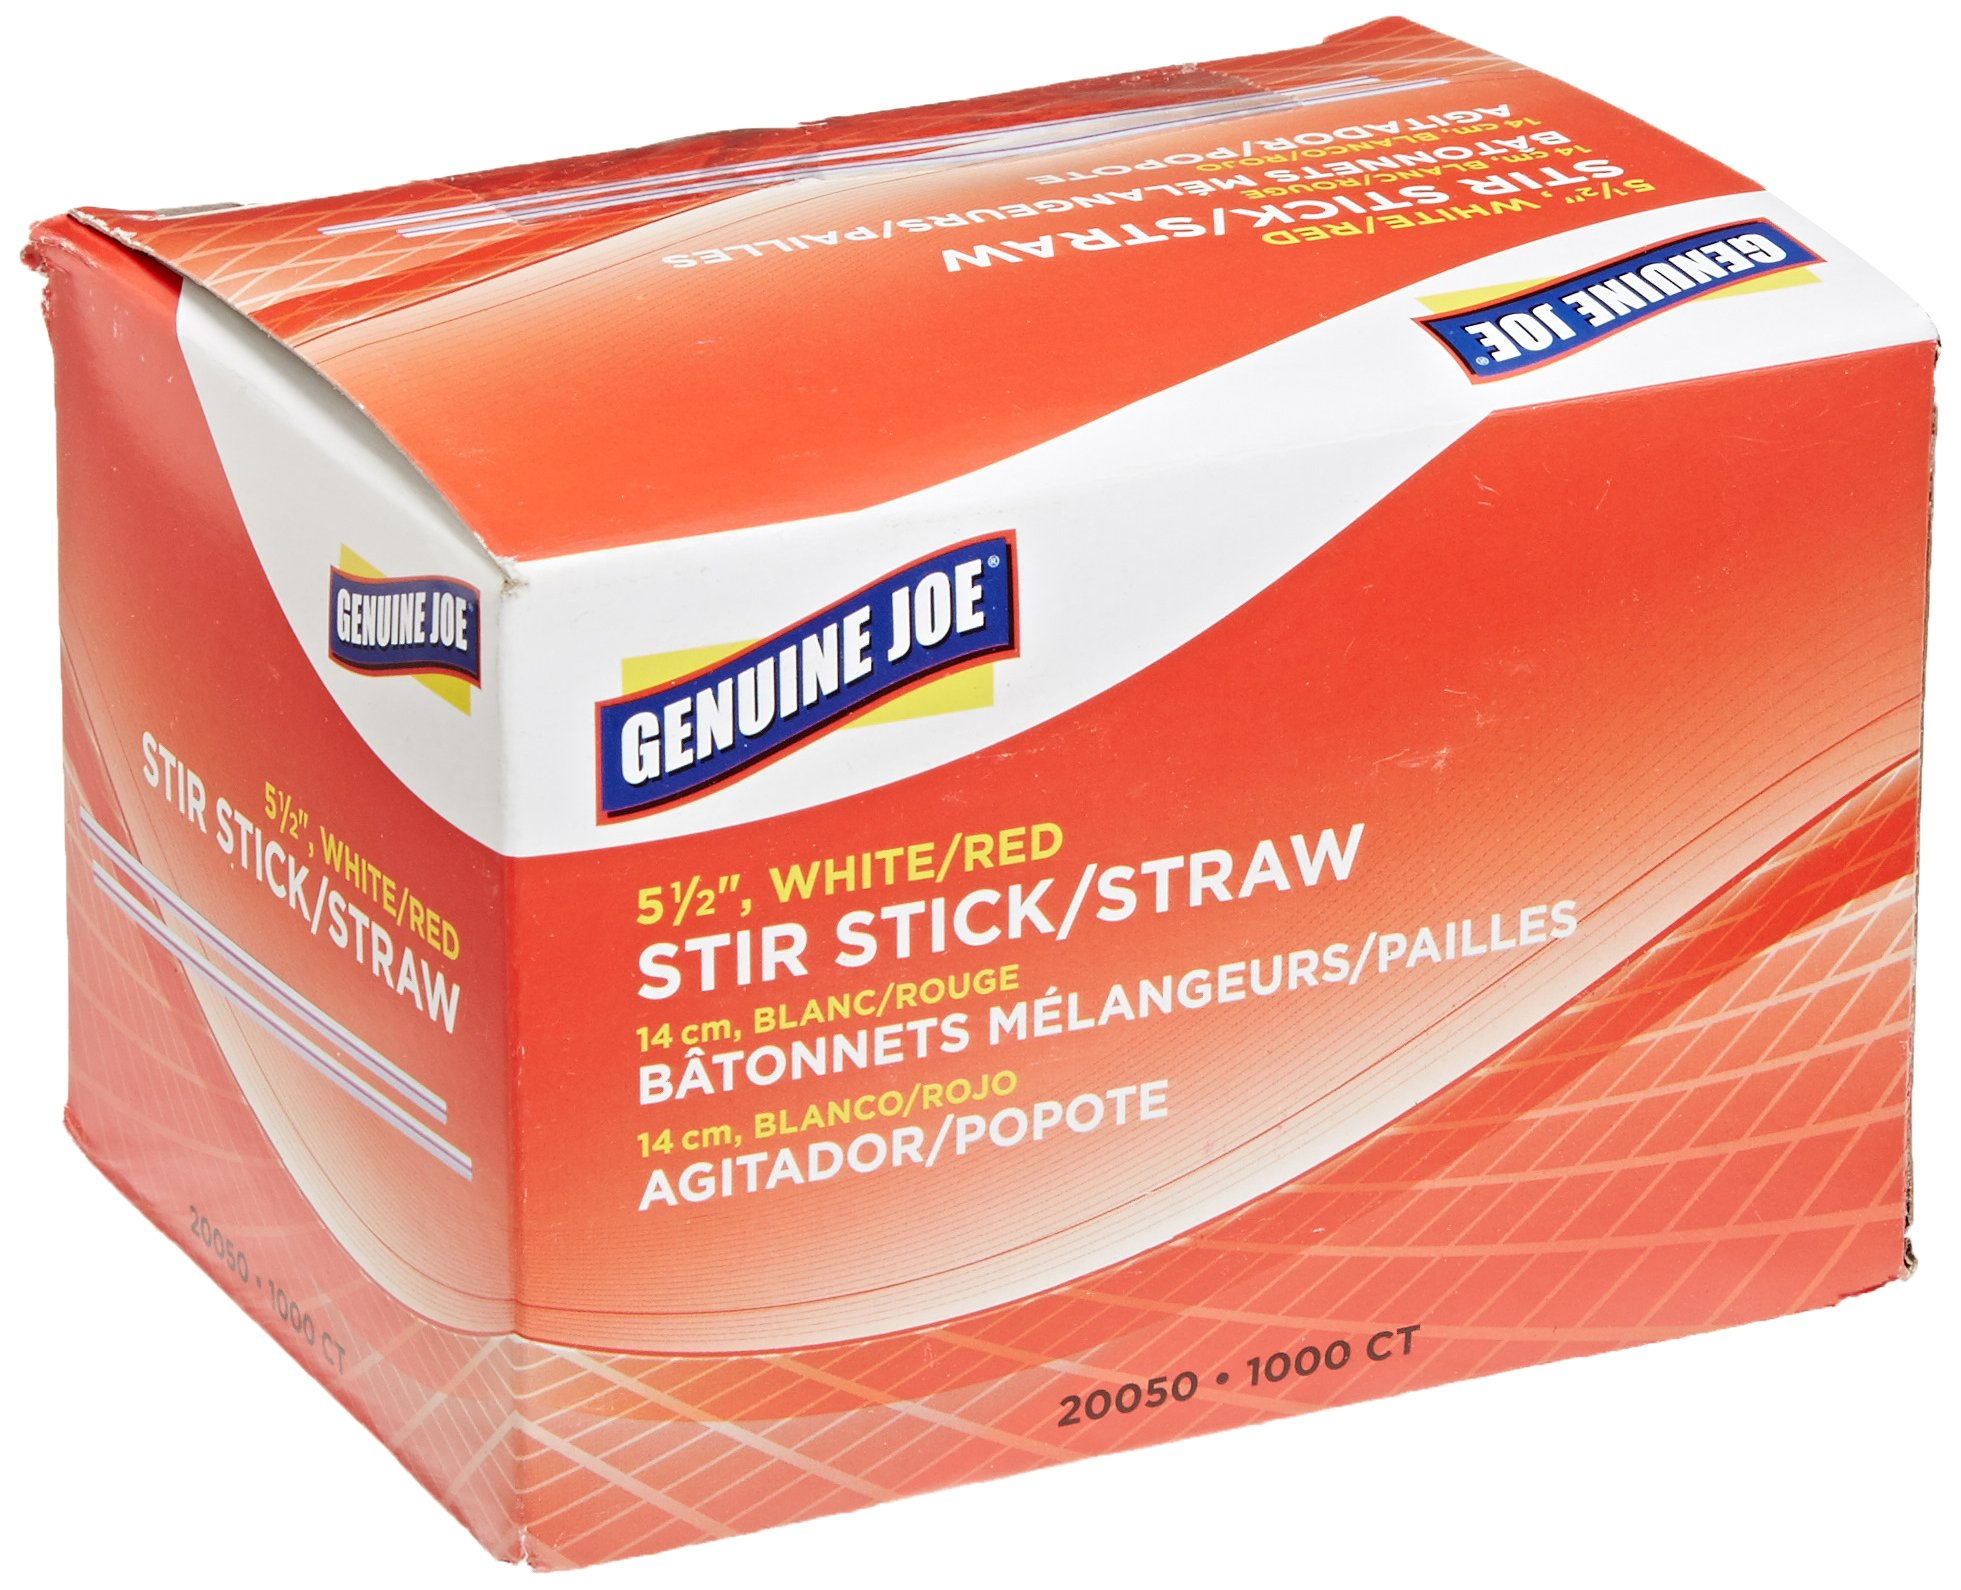 Genuine Joe GJO20050CT Plastic Stir Stick, 5-1/2'' Length, White/Red (40 Boxes of 1,000 Units)